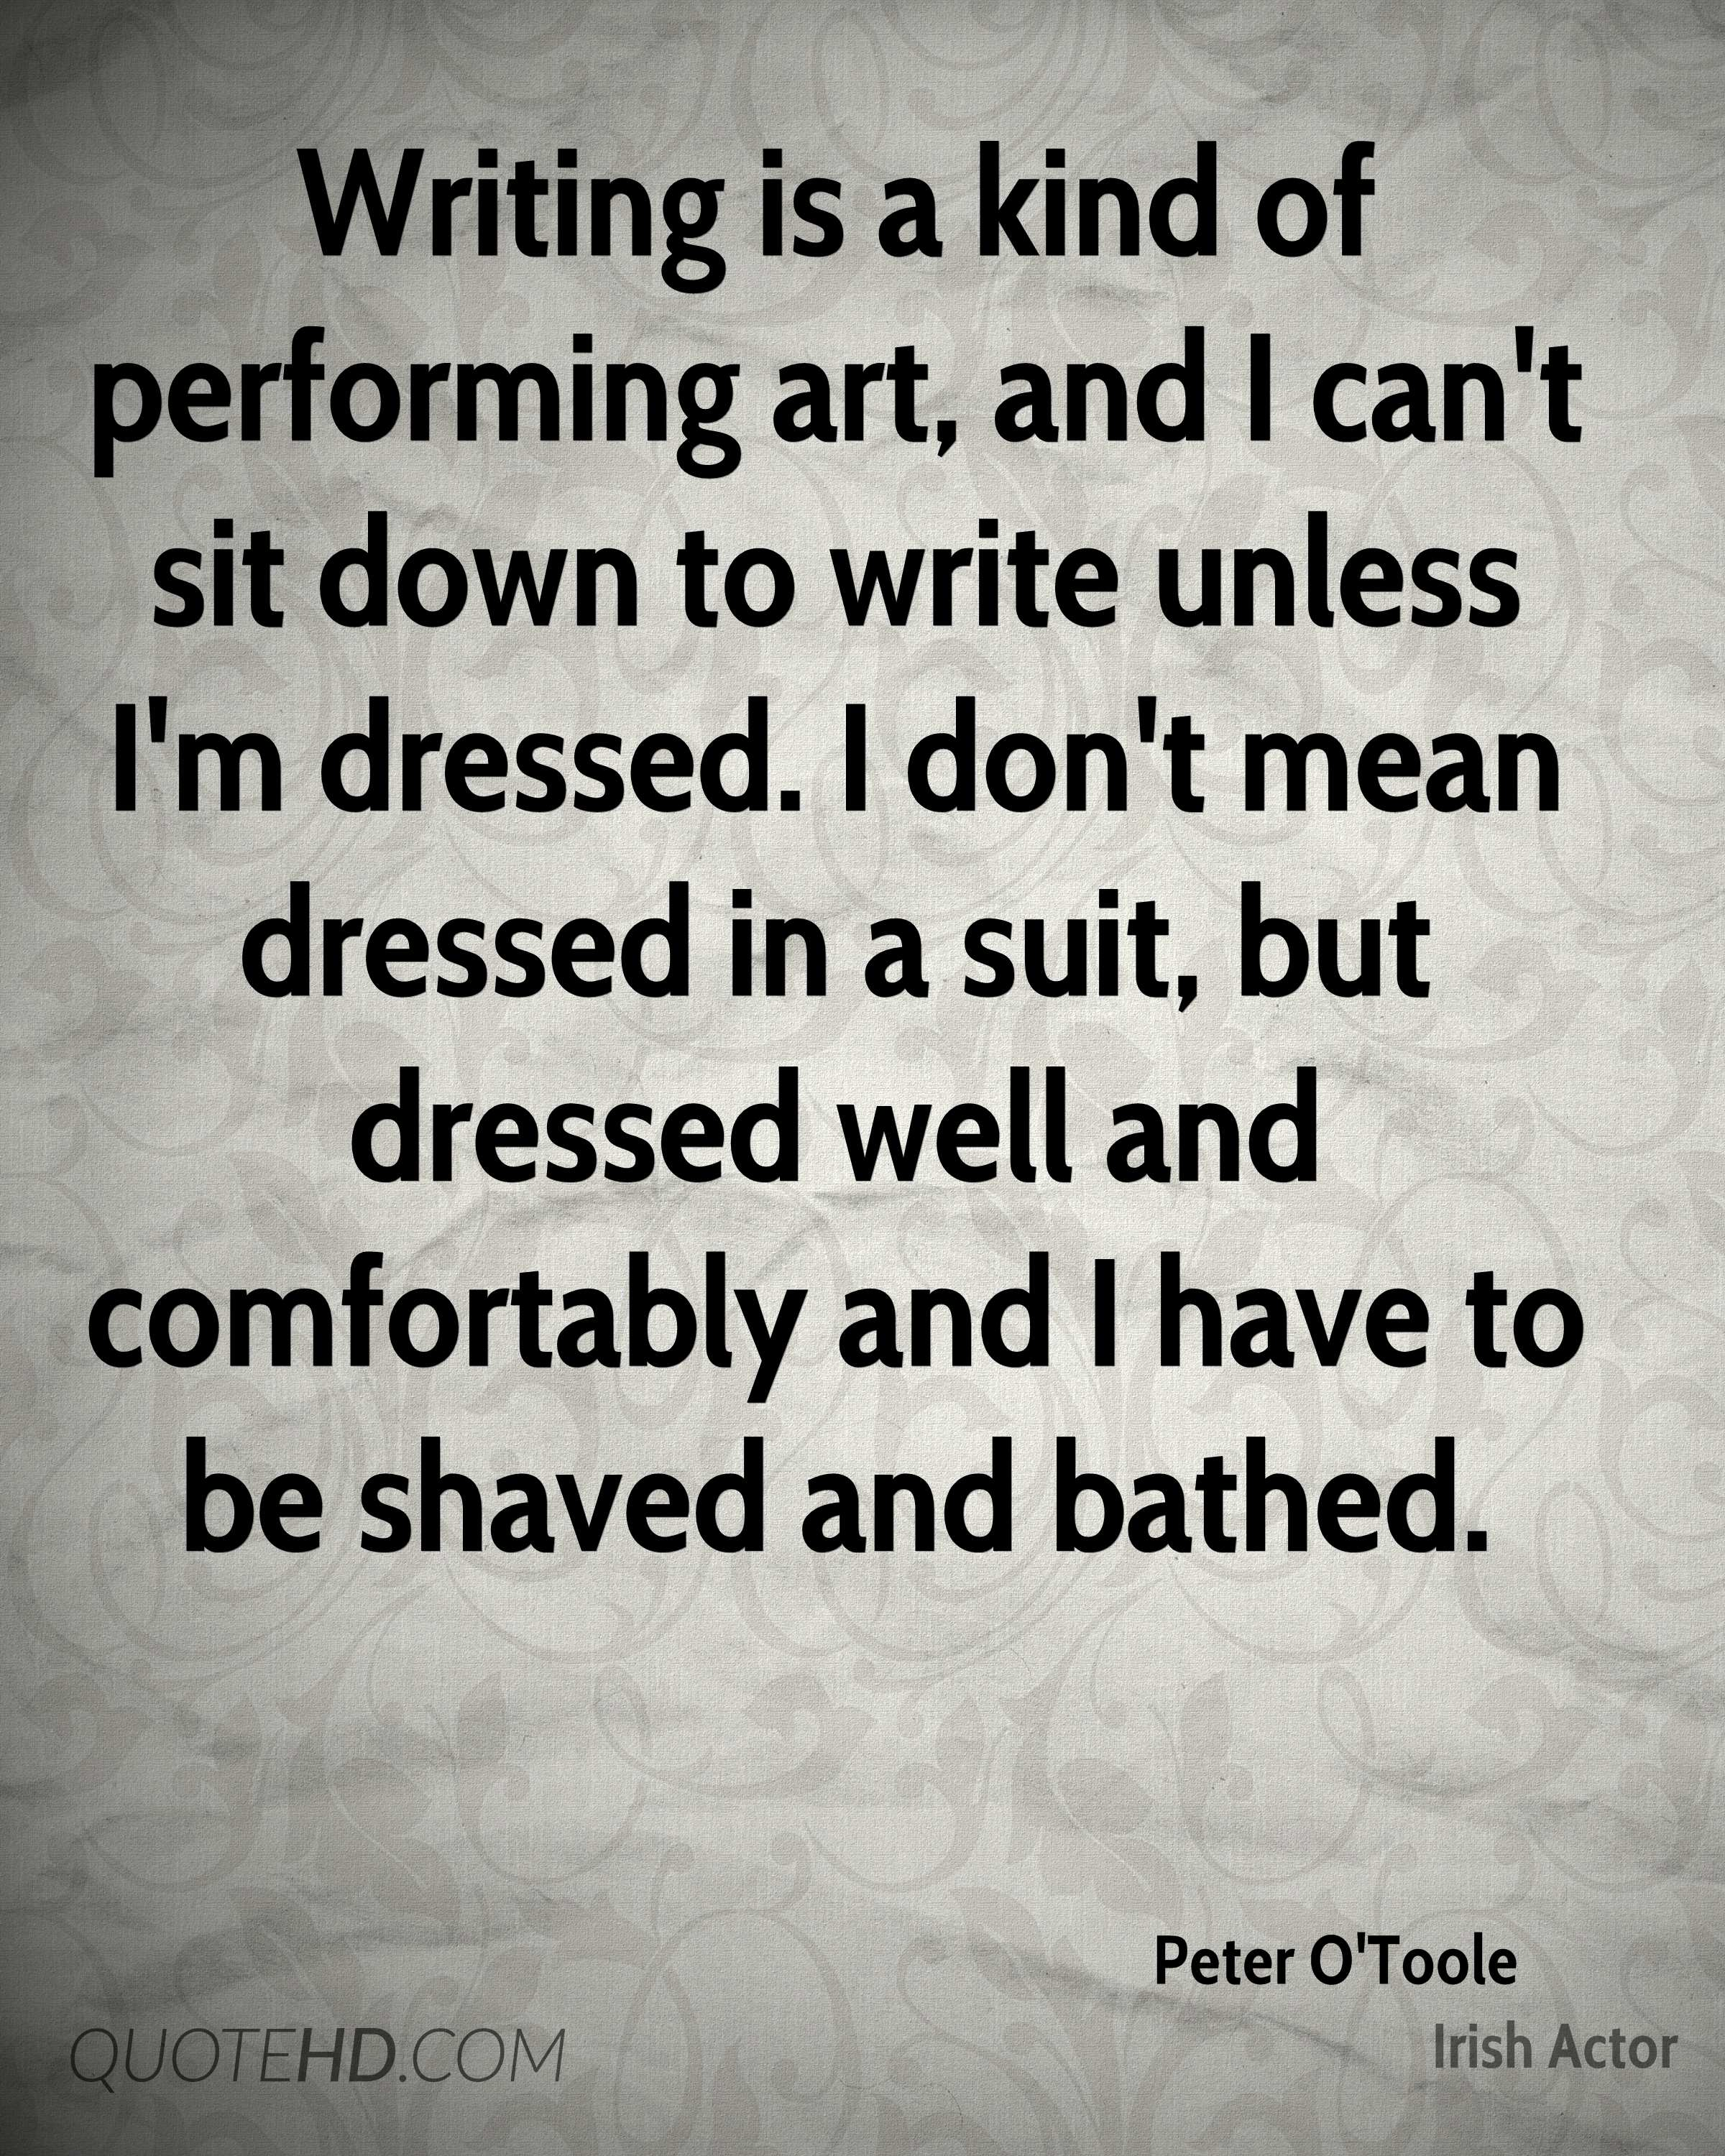 Writing is a kind of performing art, and I can't sit down to write unless I'm dressed. I don't mean dressed in a suit, but dressed well and comfortably and I have to be shaved and bathed.